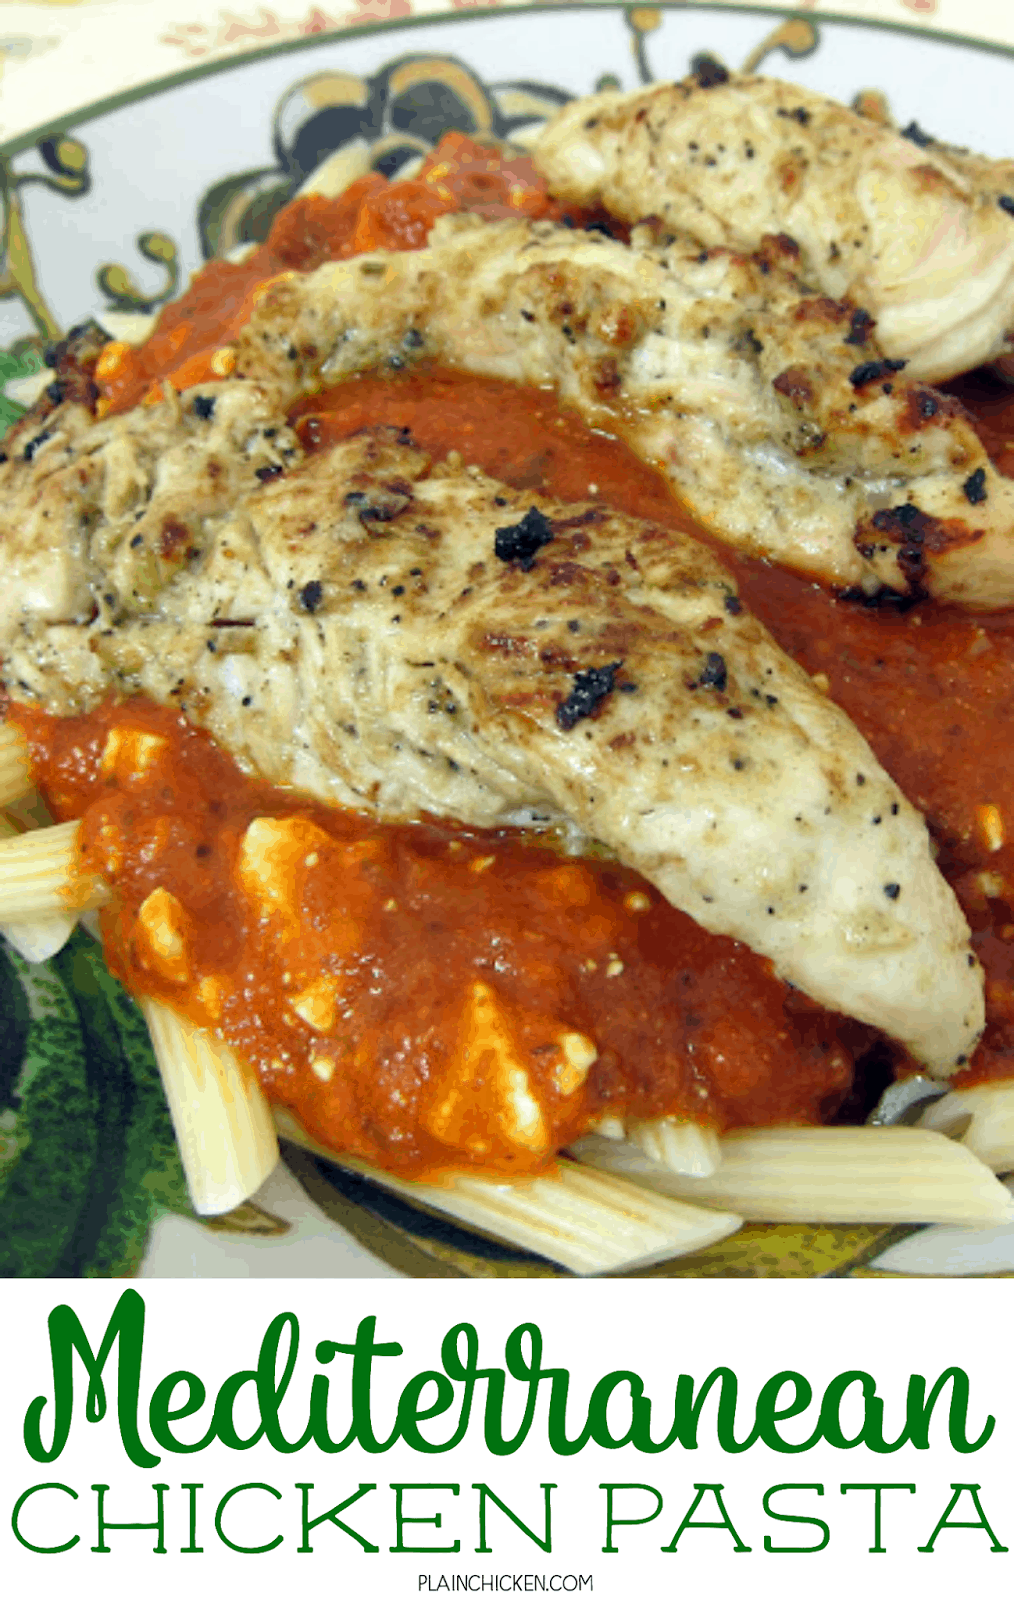 Mediterranean Chicken Pasta - Greek marinated grilled chicken served on top of pasta, marinara and feta. The chicken was so tender and delicious! Everyone loved this simple pasta dish! Serve with a salad and some crusty garlic bread.